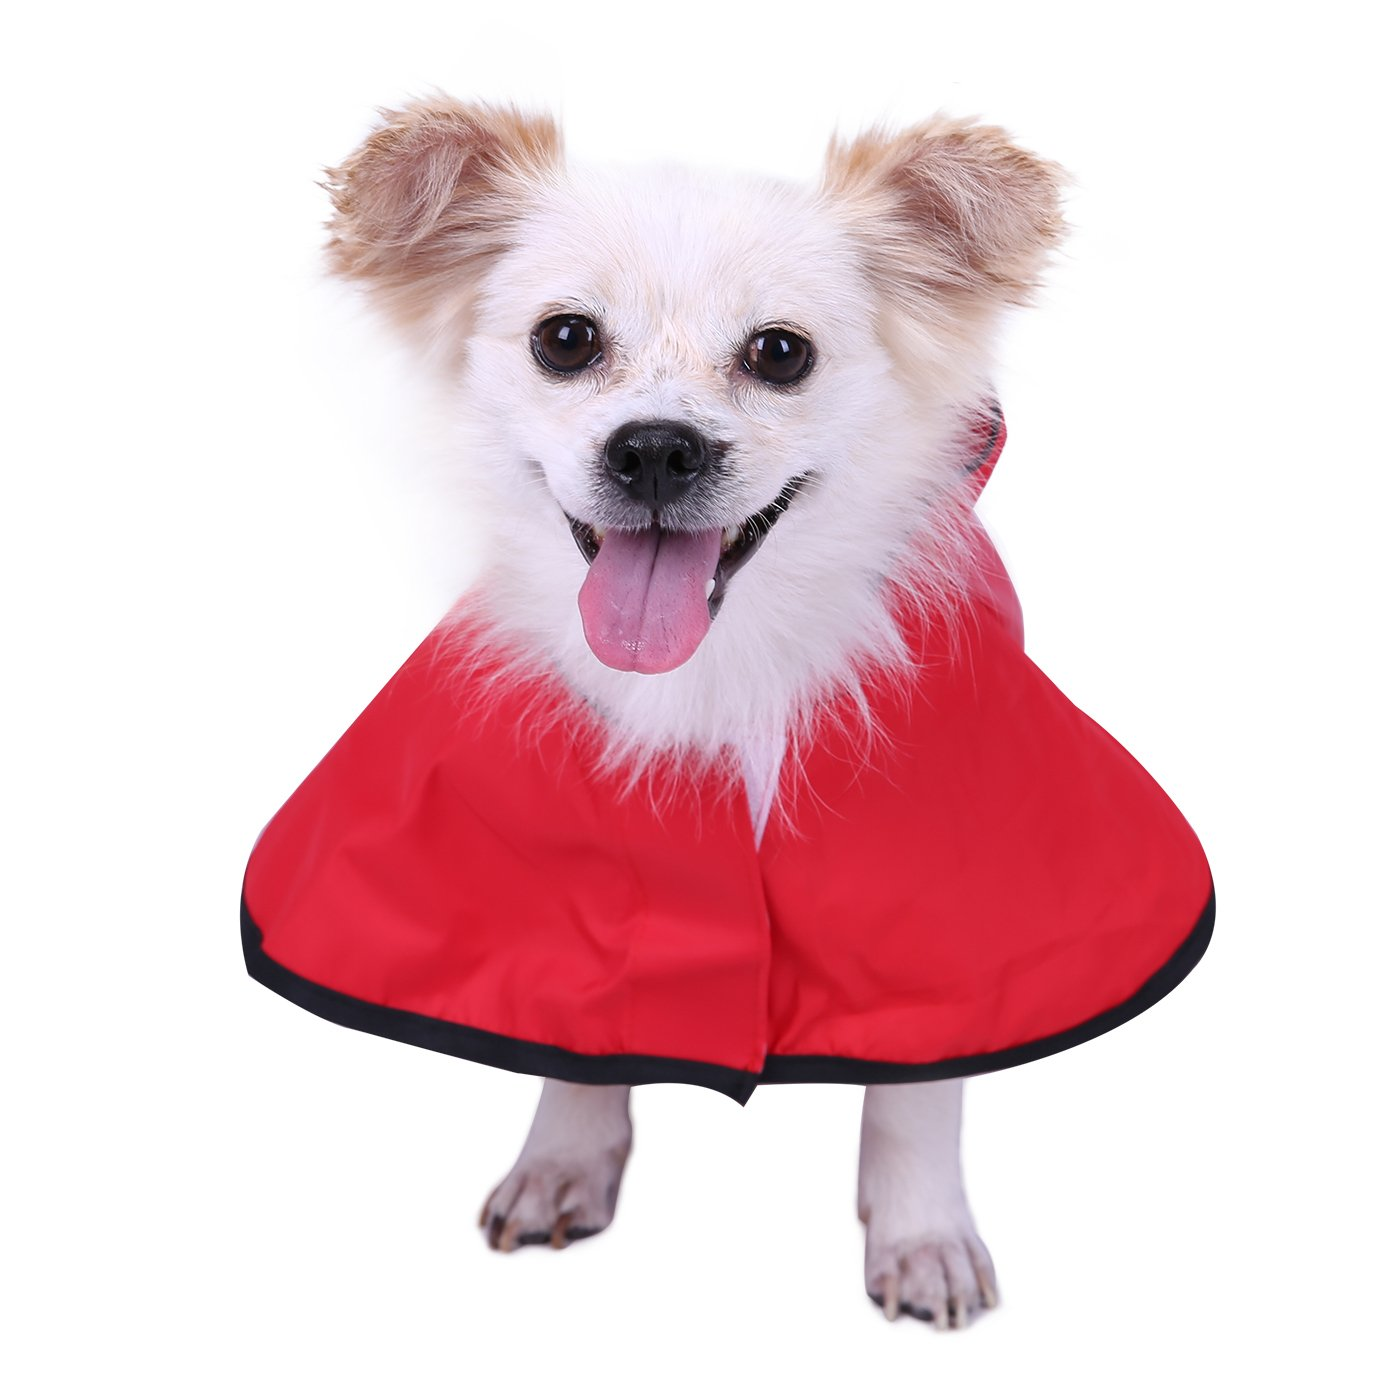 HDE Dog Raincoat Hooded Slicker Poncho for Small to X-Large Dogs and Puppies (Red, Medium) by HDE (Image #3)